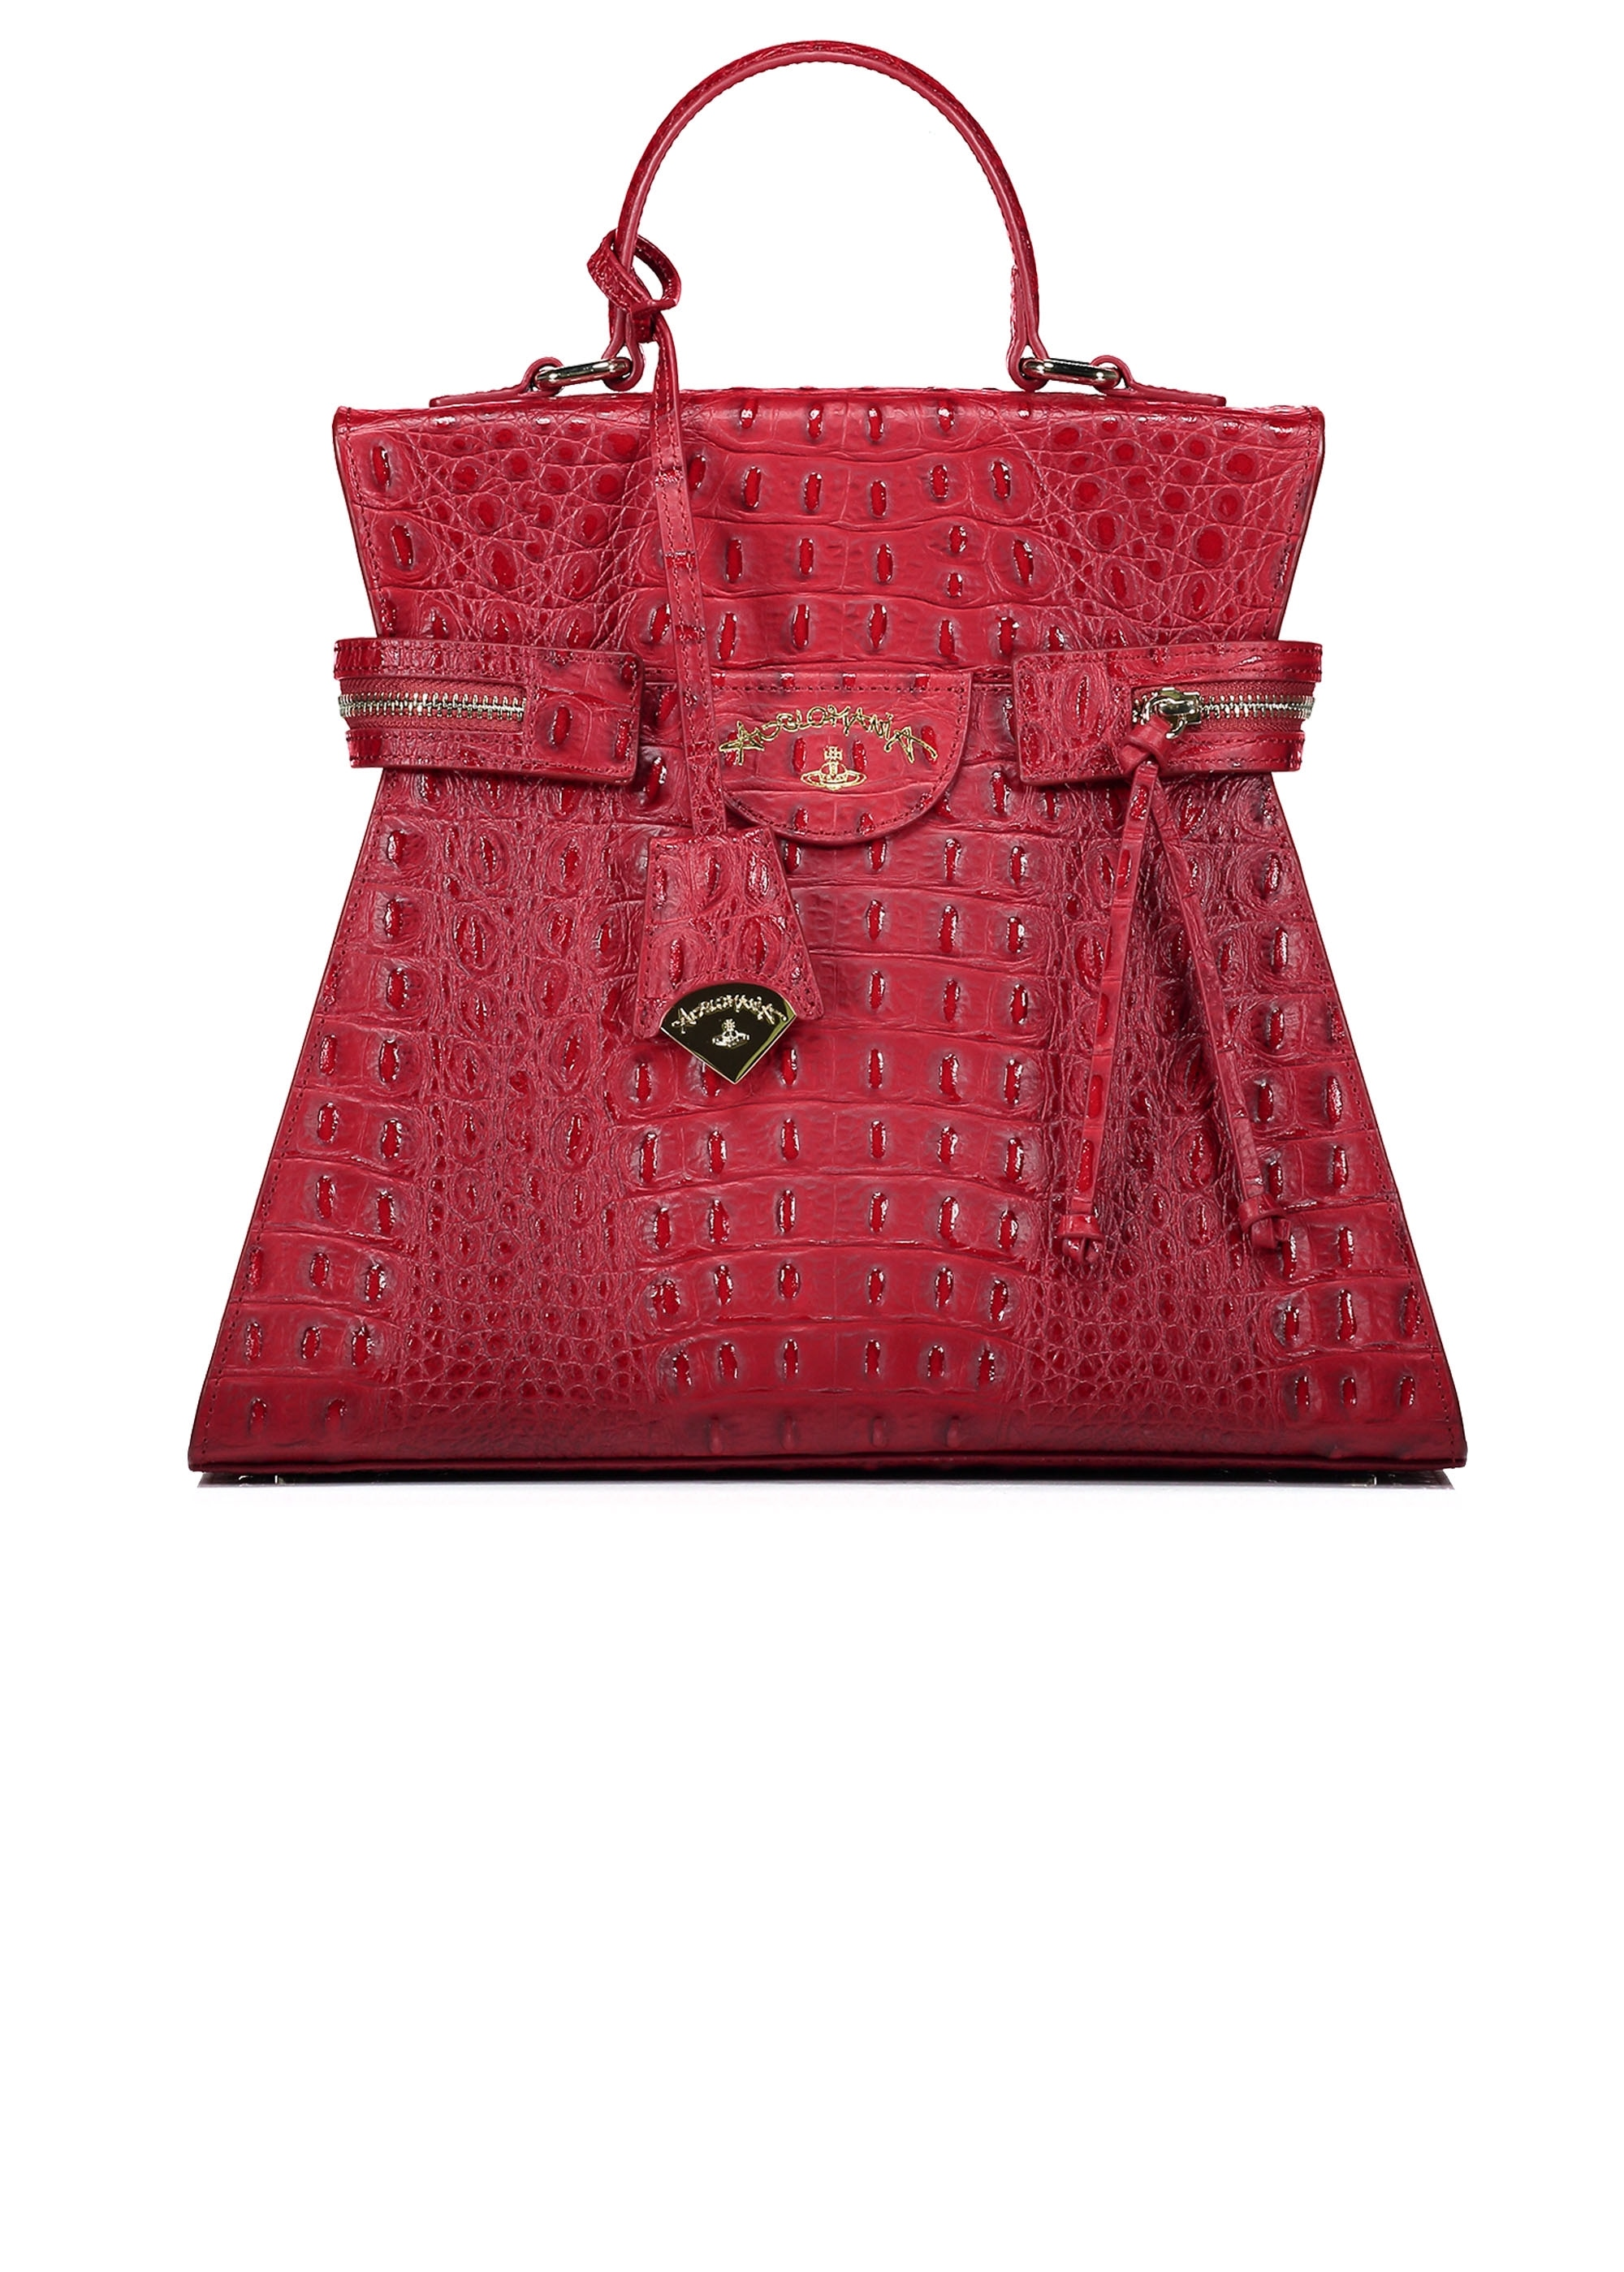 ba31bbec57492 Vivienne Westwood Accessories Kelly Large Handbag - Red - Bags Purses from  Triads UK